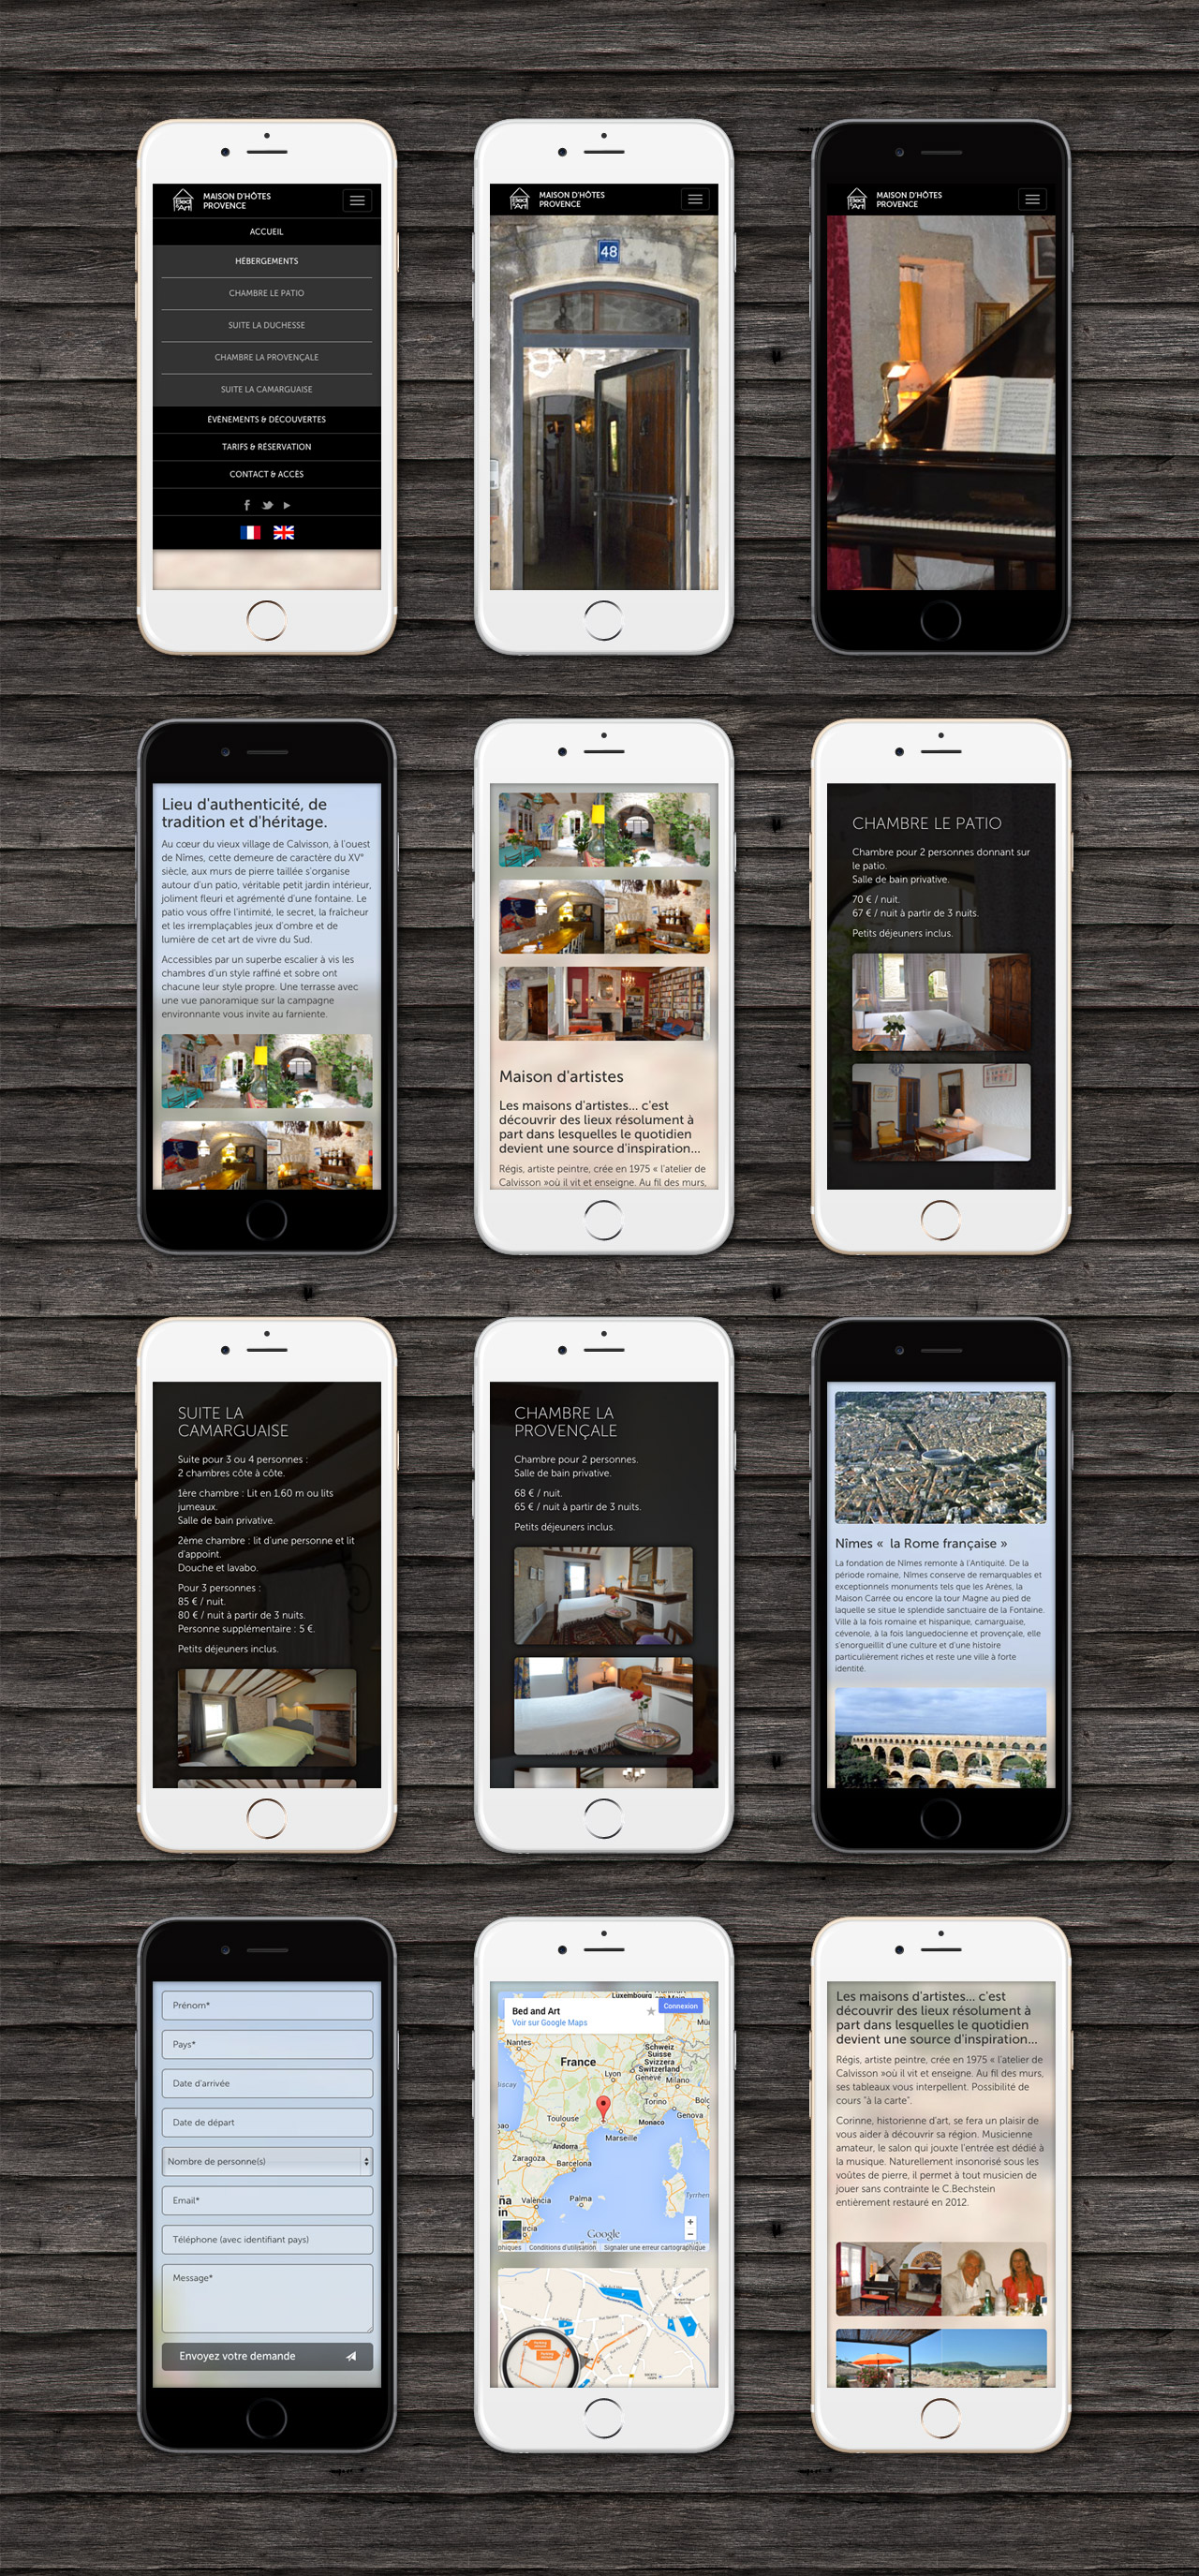 bed-and-art-maison-d-hotes-site-mobile-responsive-design-creation-communication-caconcept-alexis-cretin-graphiste